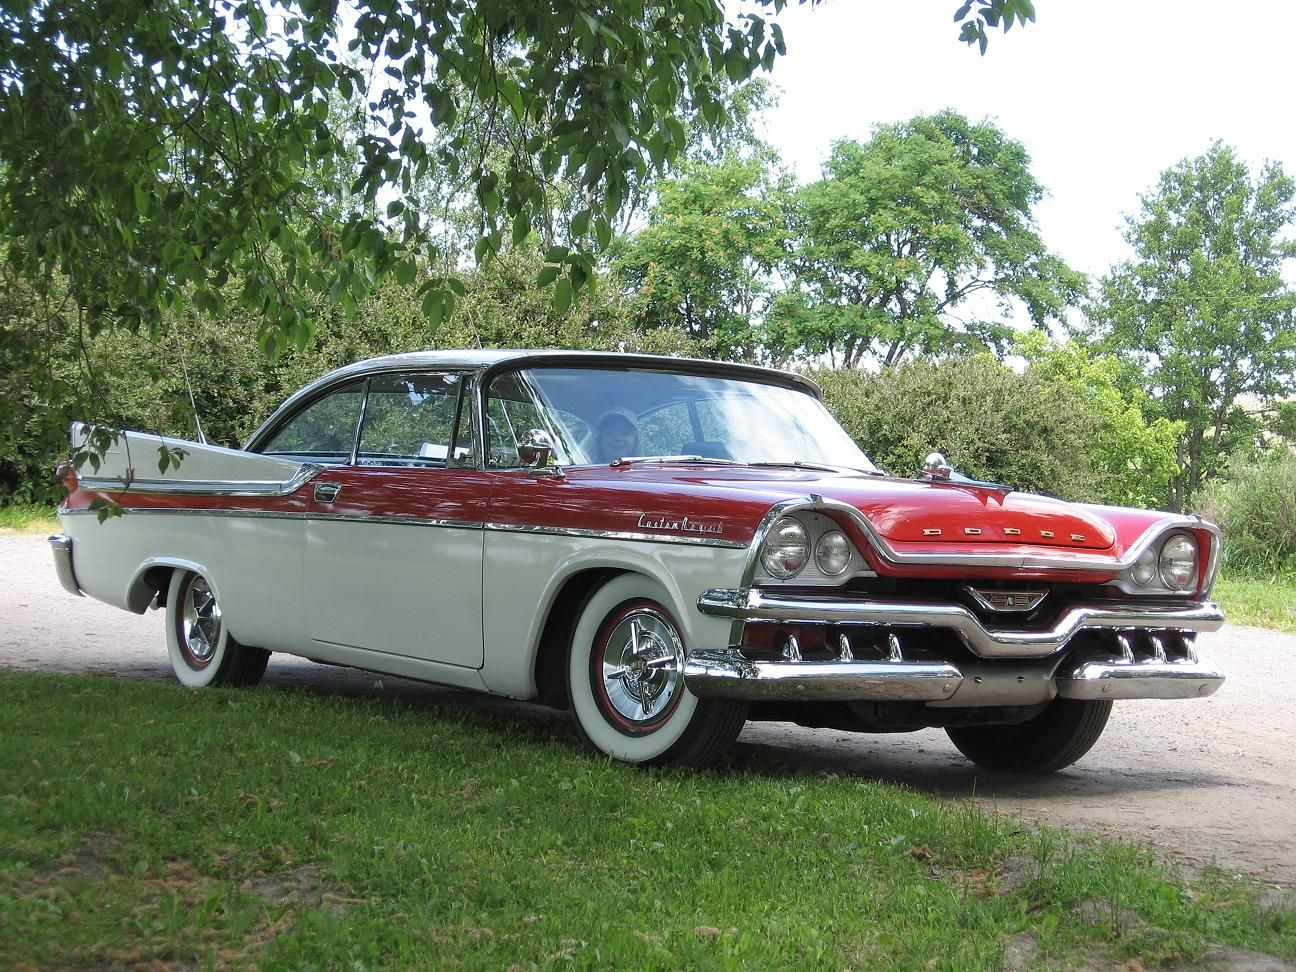 1957 Dodge Custom Royal 2 D HT. 325 cid V8 with twin carbs and ...